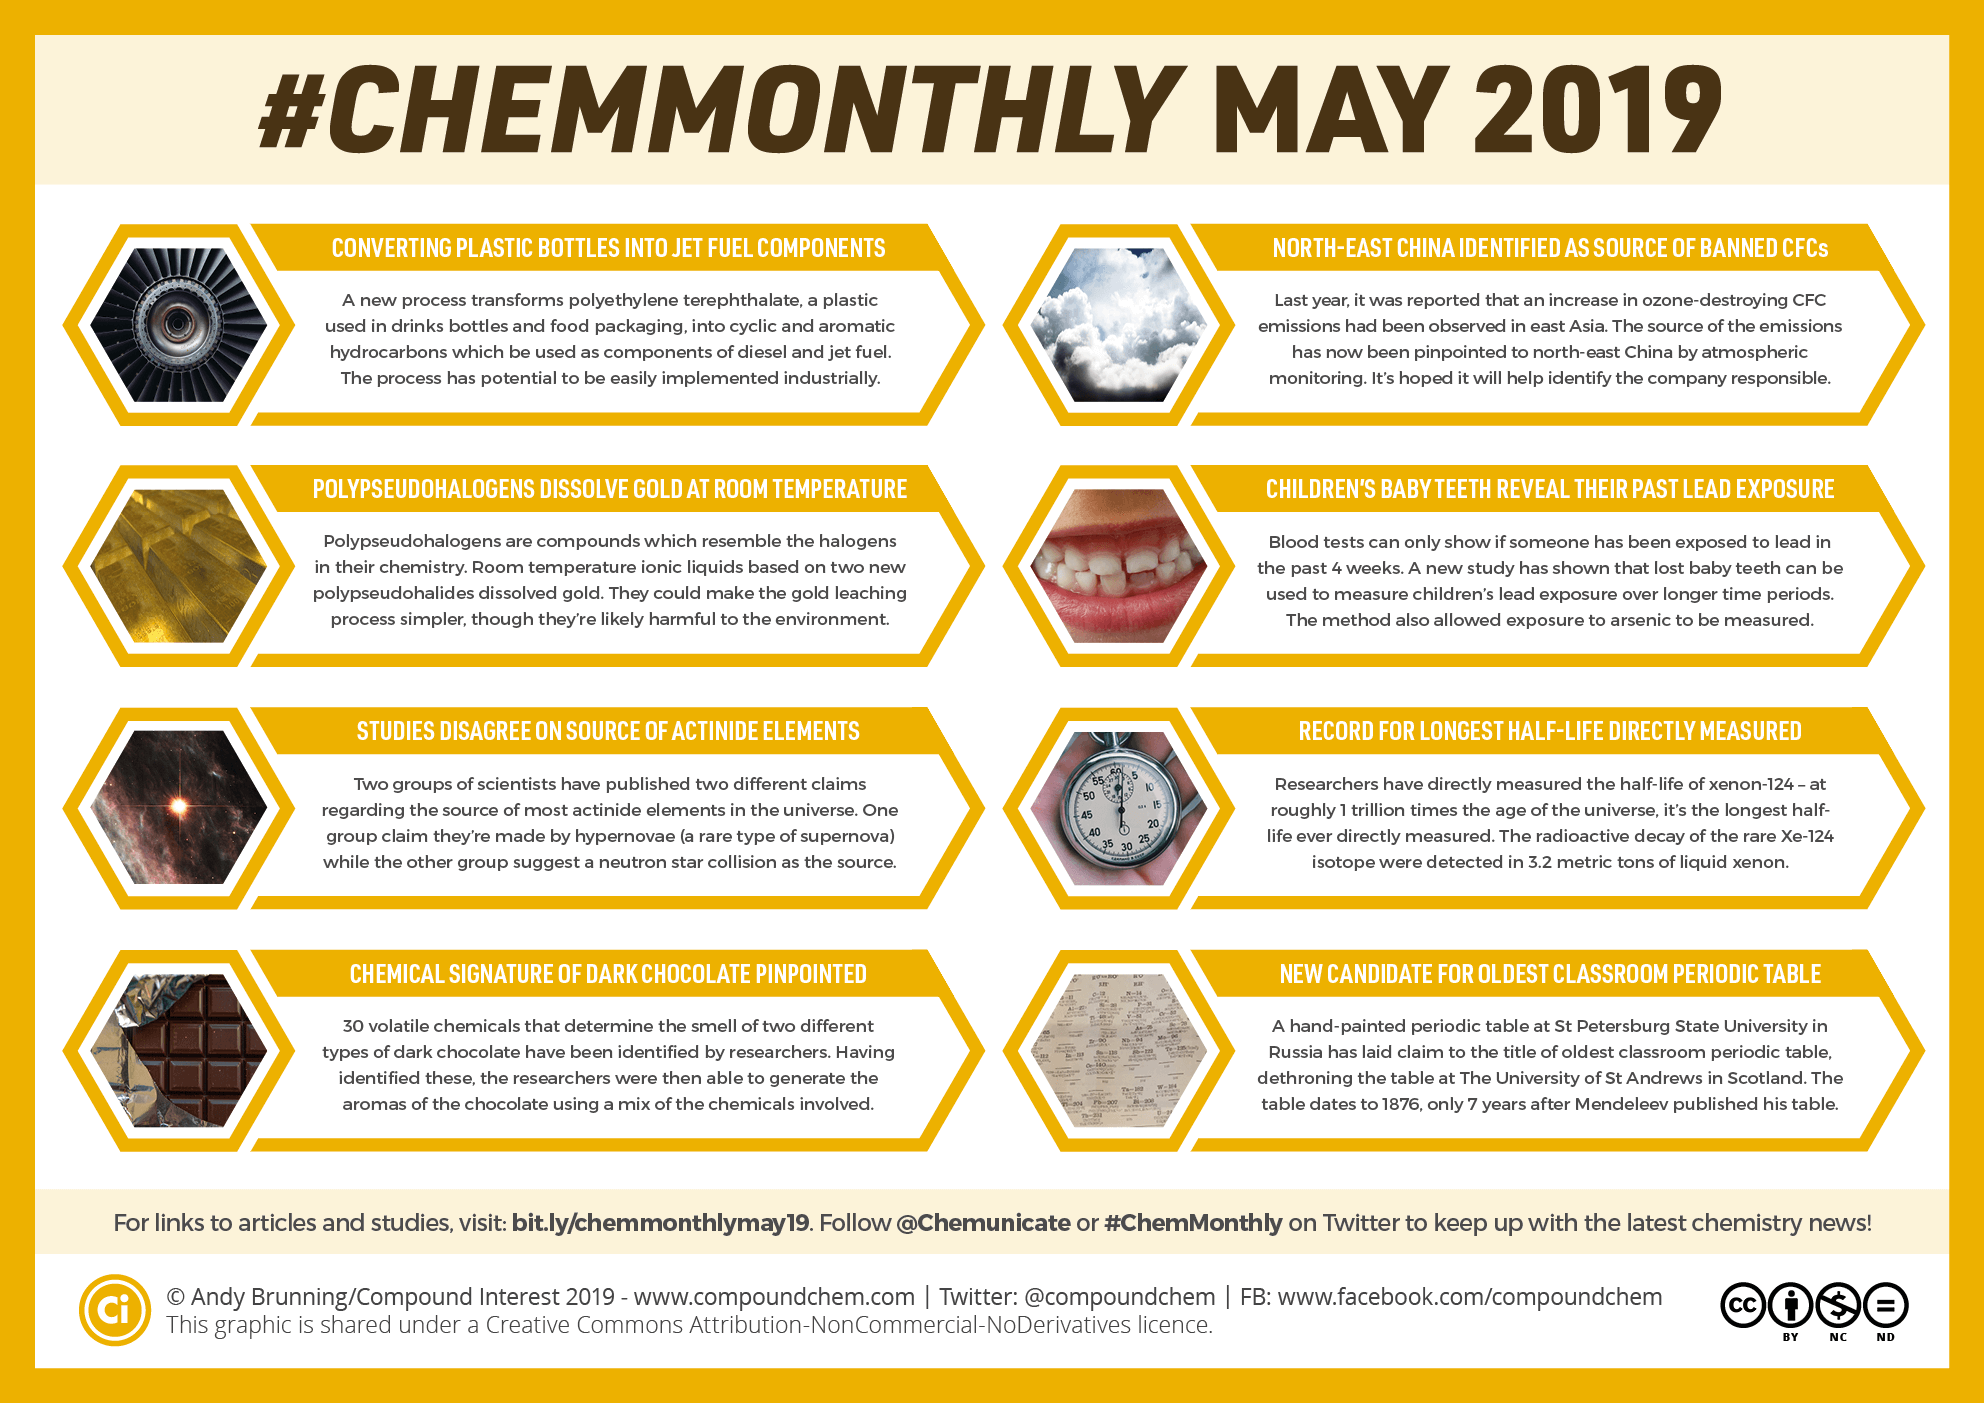 #ChemMonthly May 2019: Plastic bottles to jet fuel, and simulating dark chocolate aroma